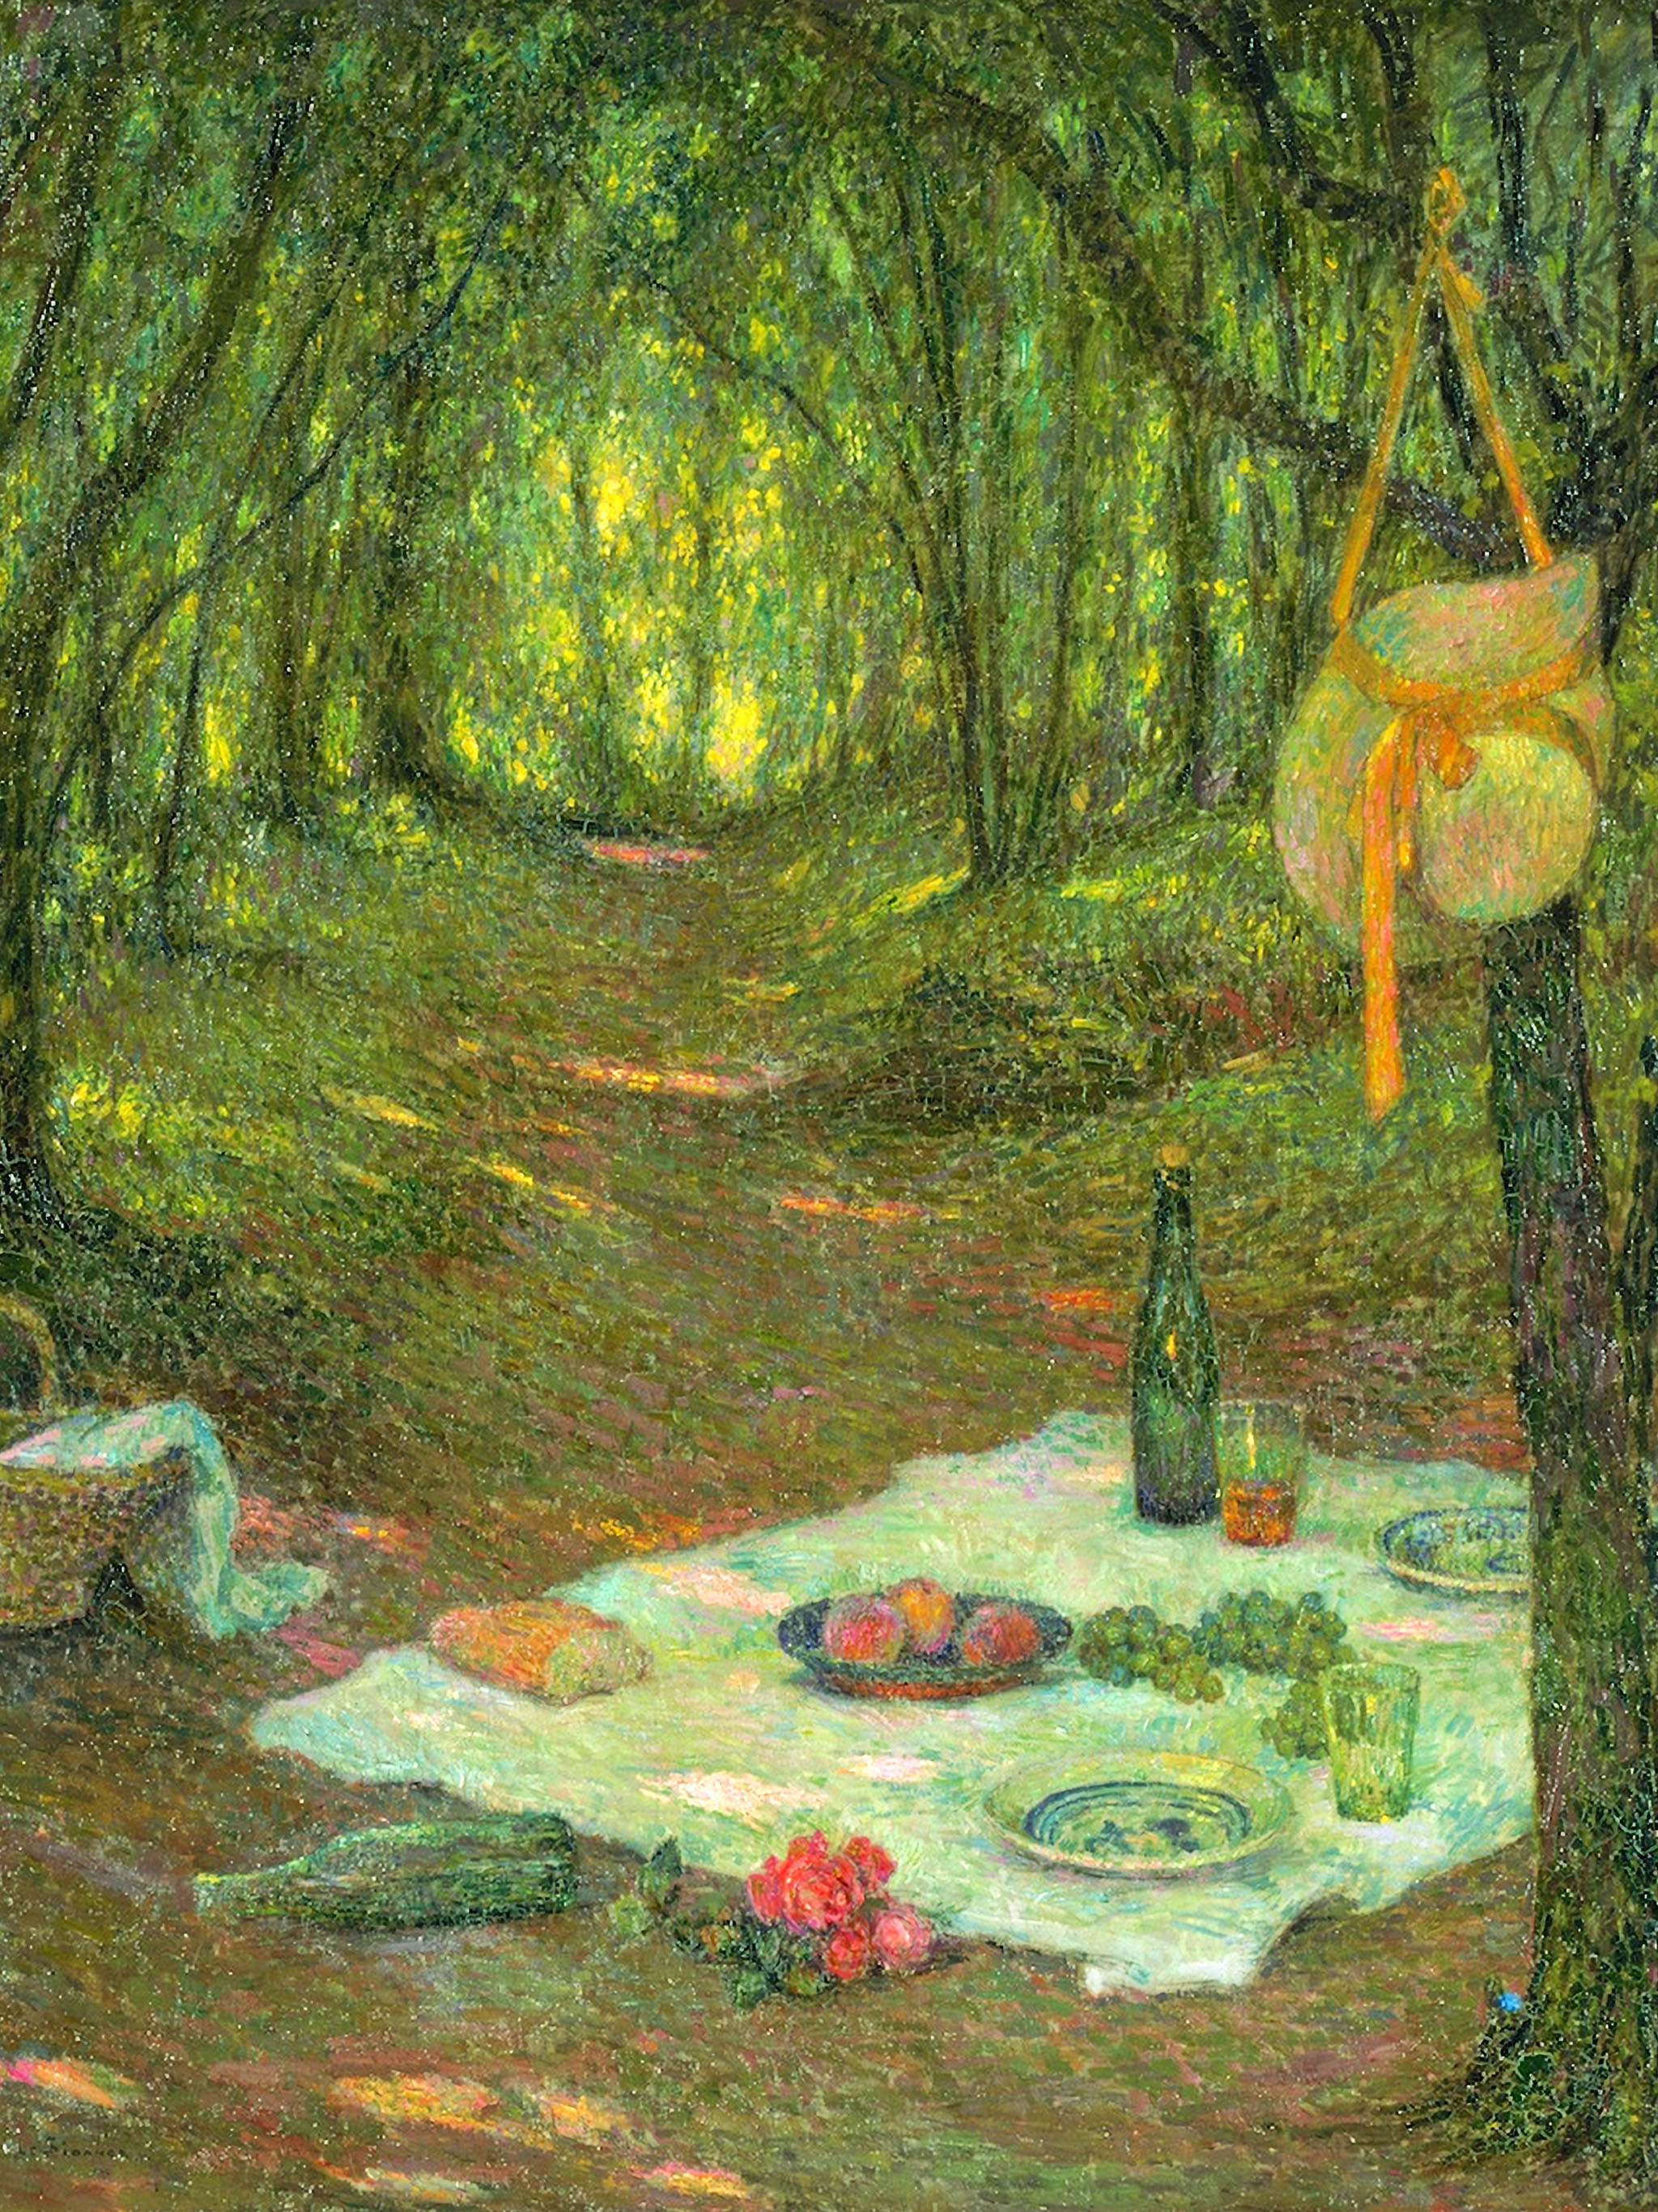 アンリ・ル・シダネル Henri Le Sidaner - A Break in the Woods, Gerberoy 2048x2732